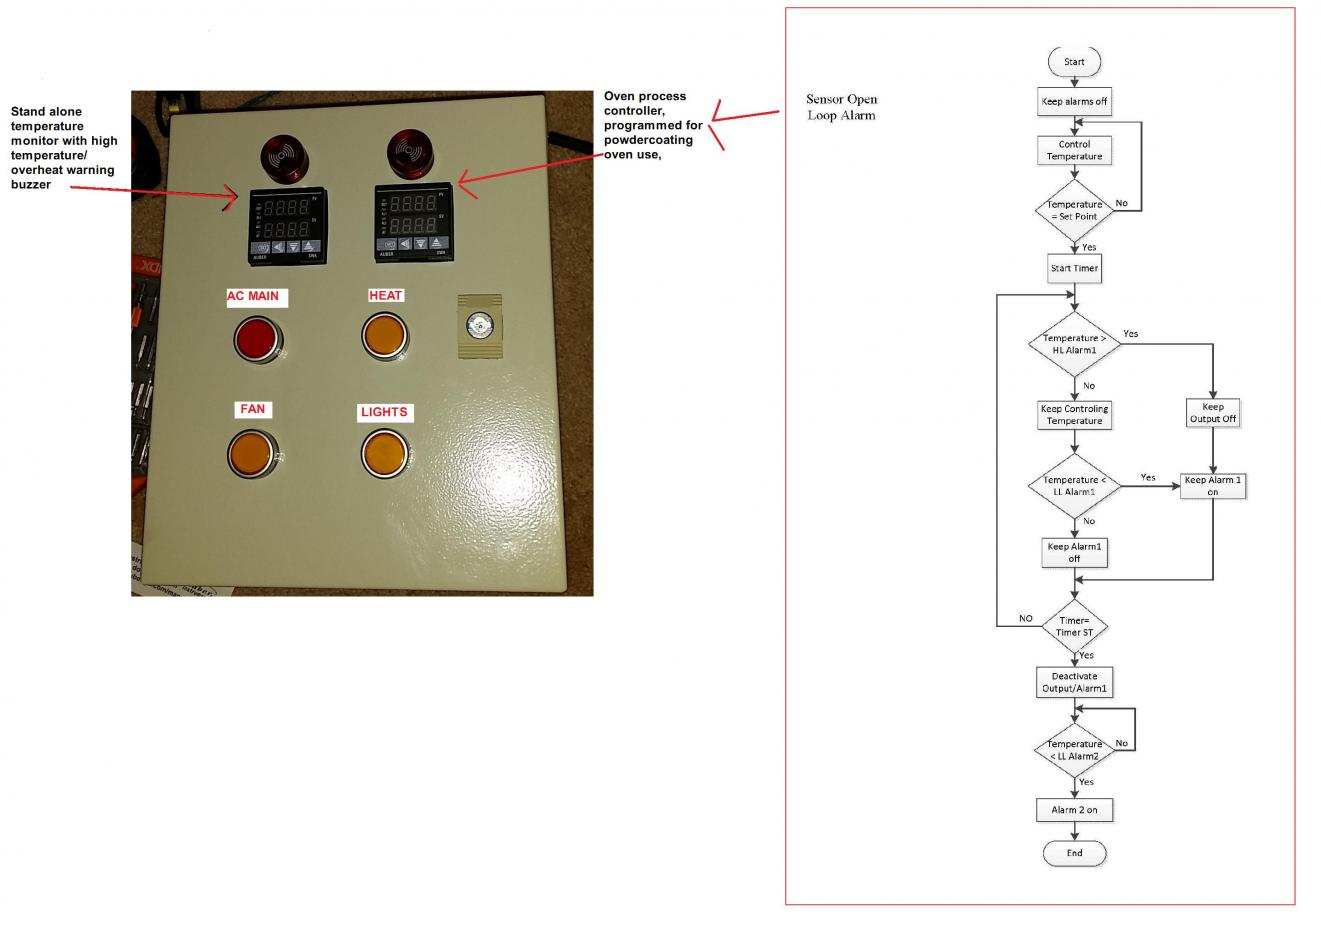 Type Of Wire For Oven Controller Caswell Inc Metal Finishing Forums Pid Wiring Diagram Powder Coat